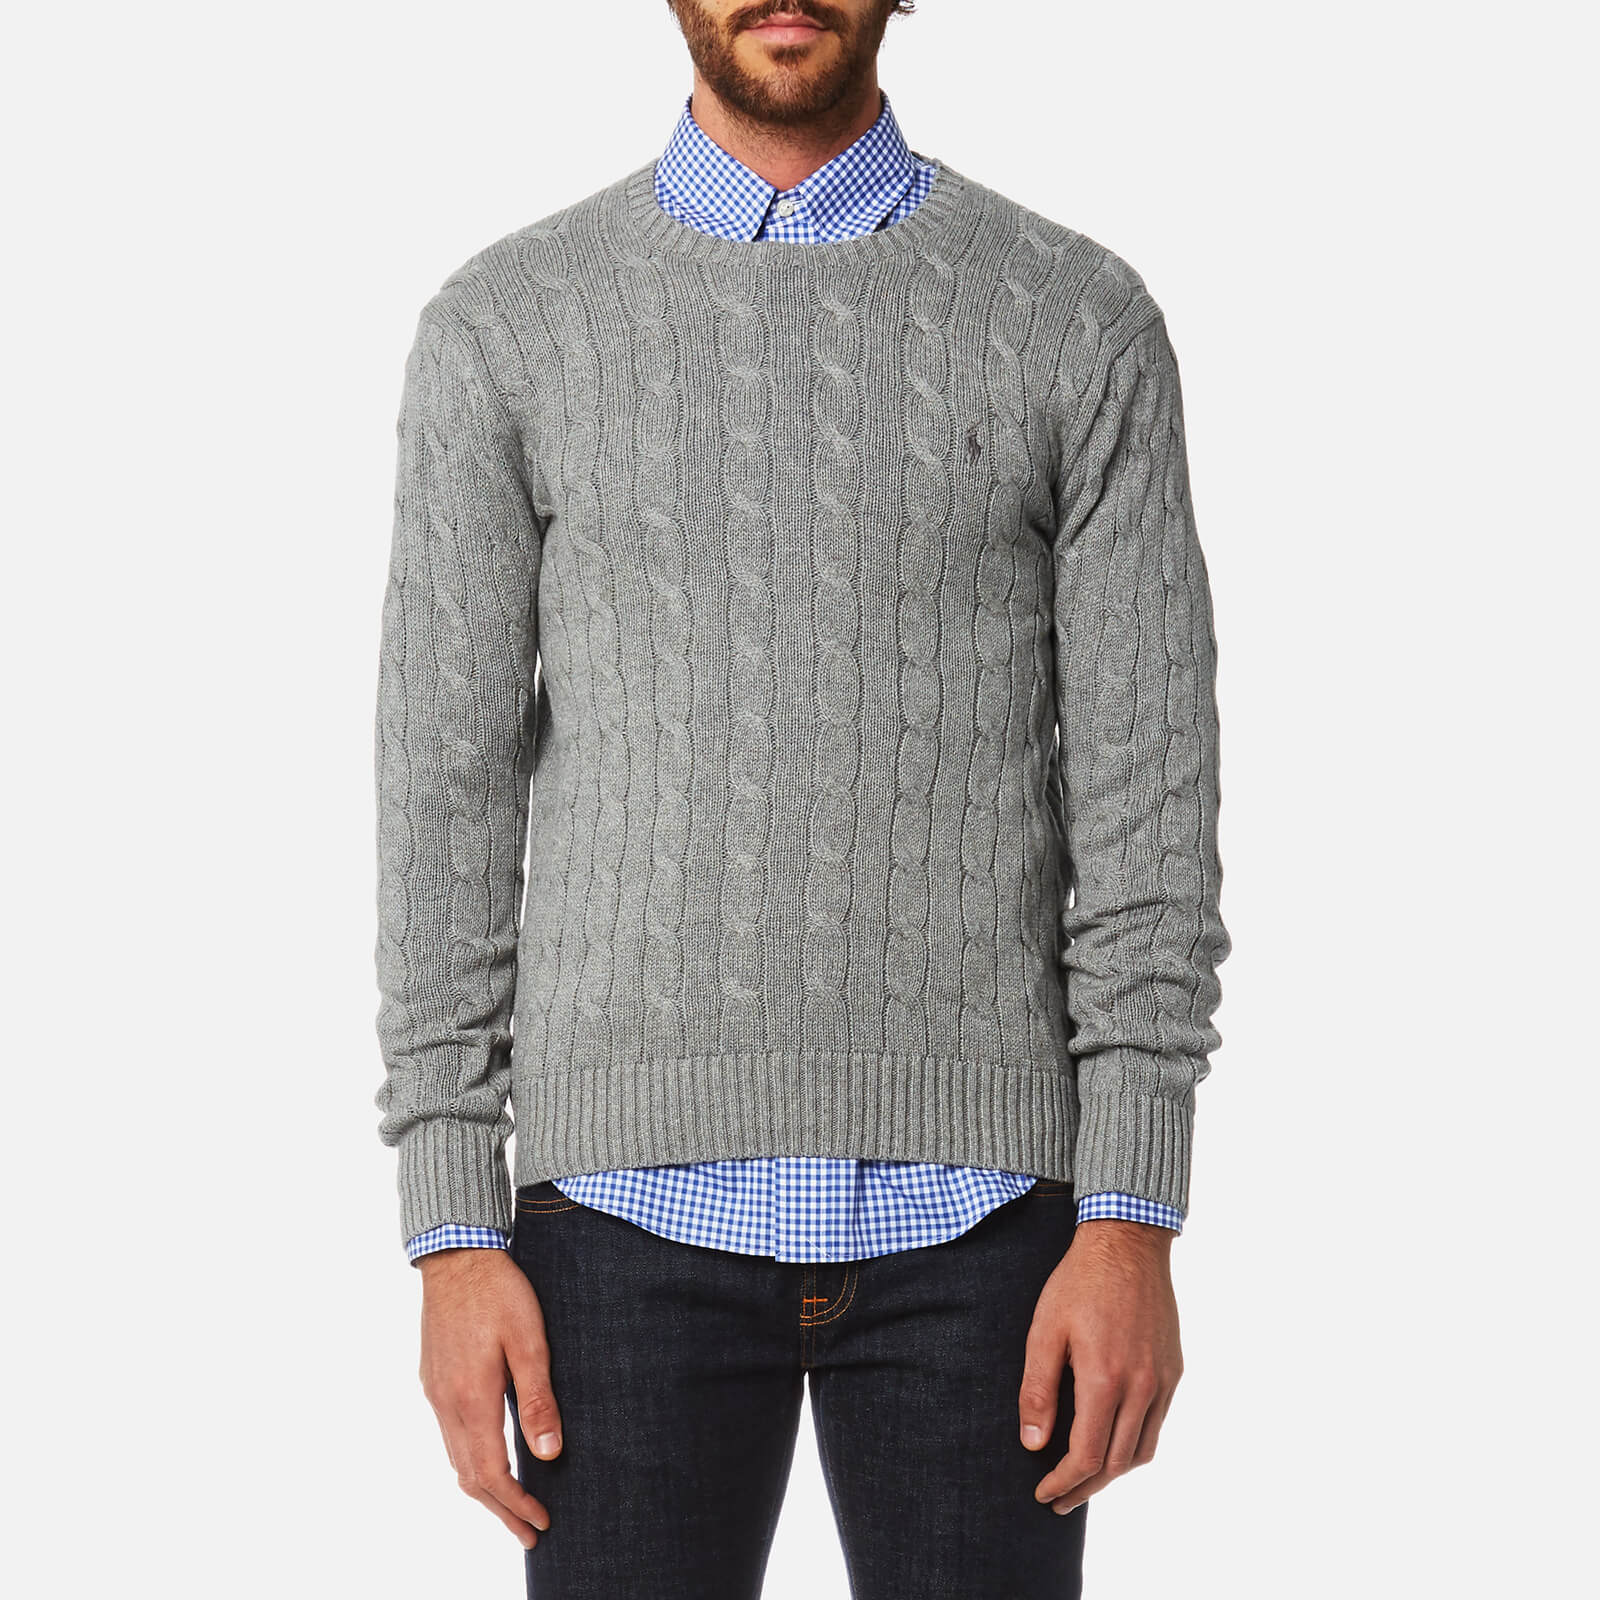 9df126a4252c Polo Ralph Lauren Men s Cotton Cable Knitted Jumper - Fawn Grey Heather -  Free UK Delivery over £50